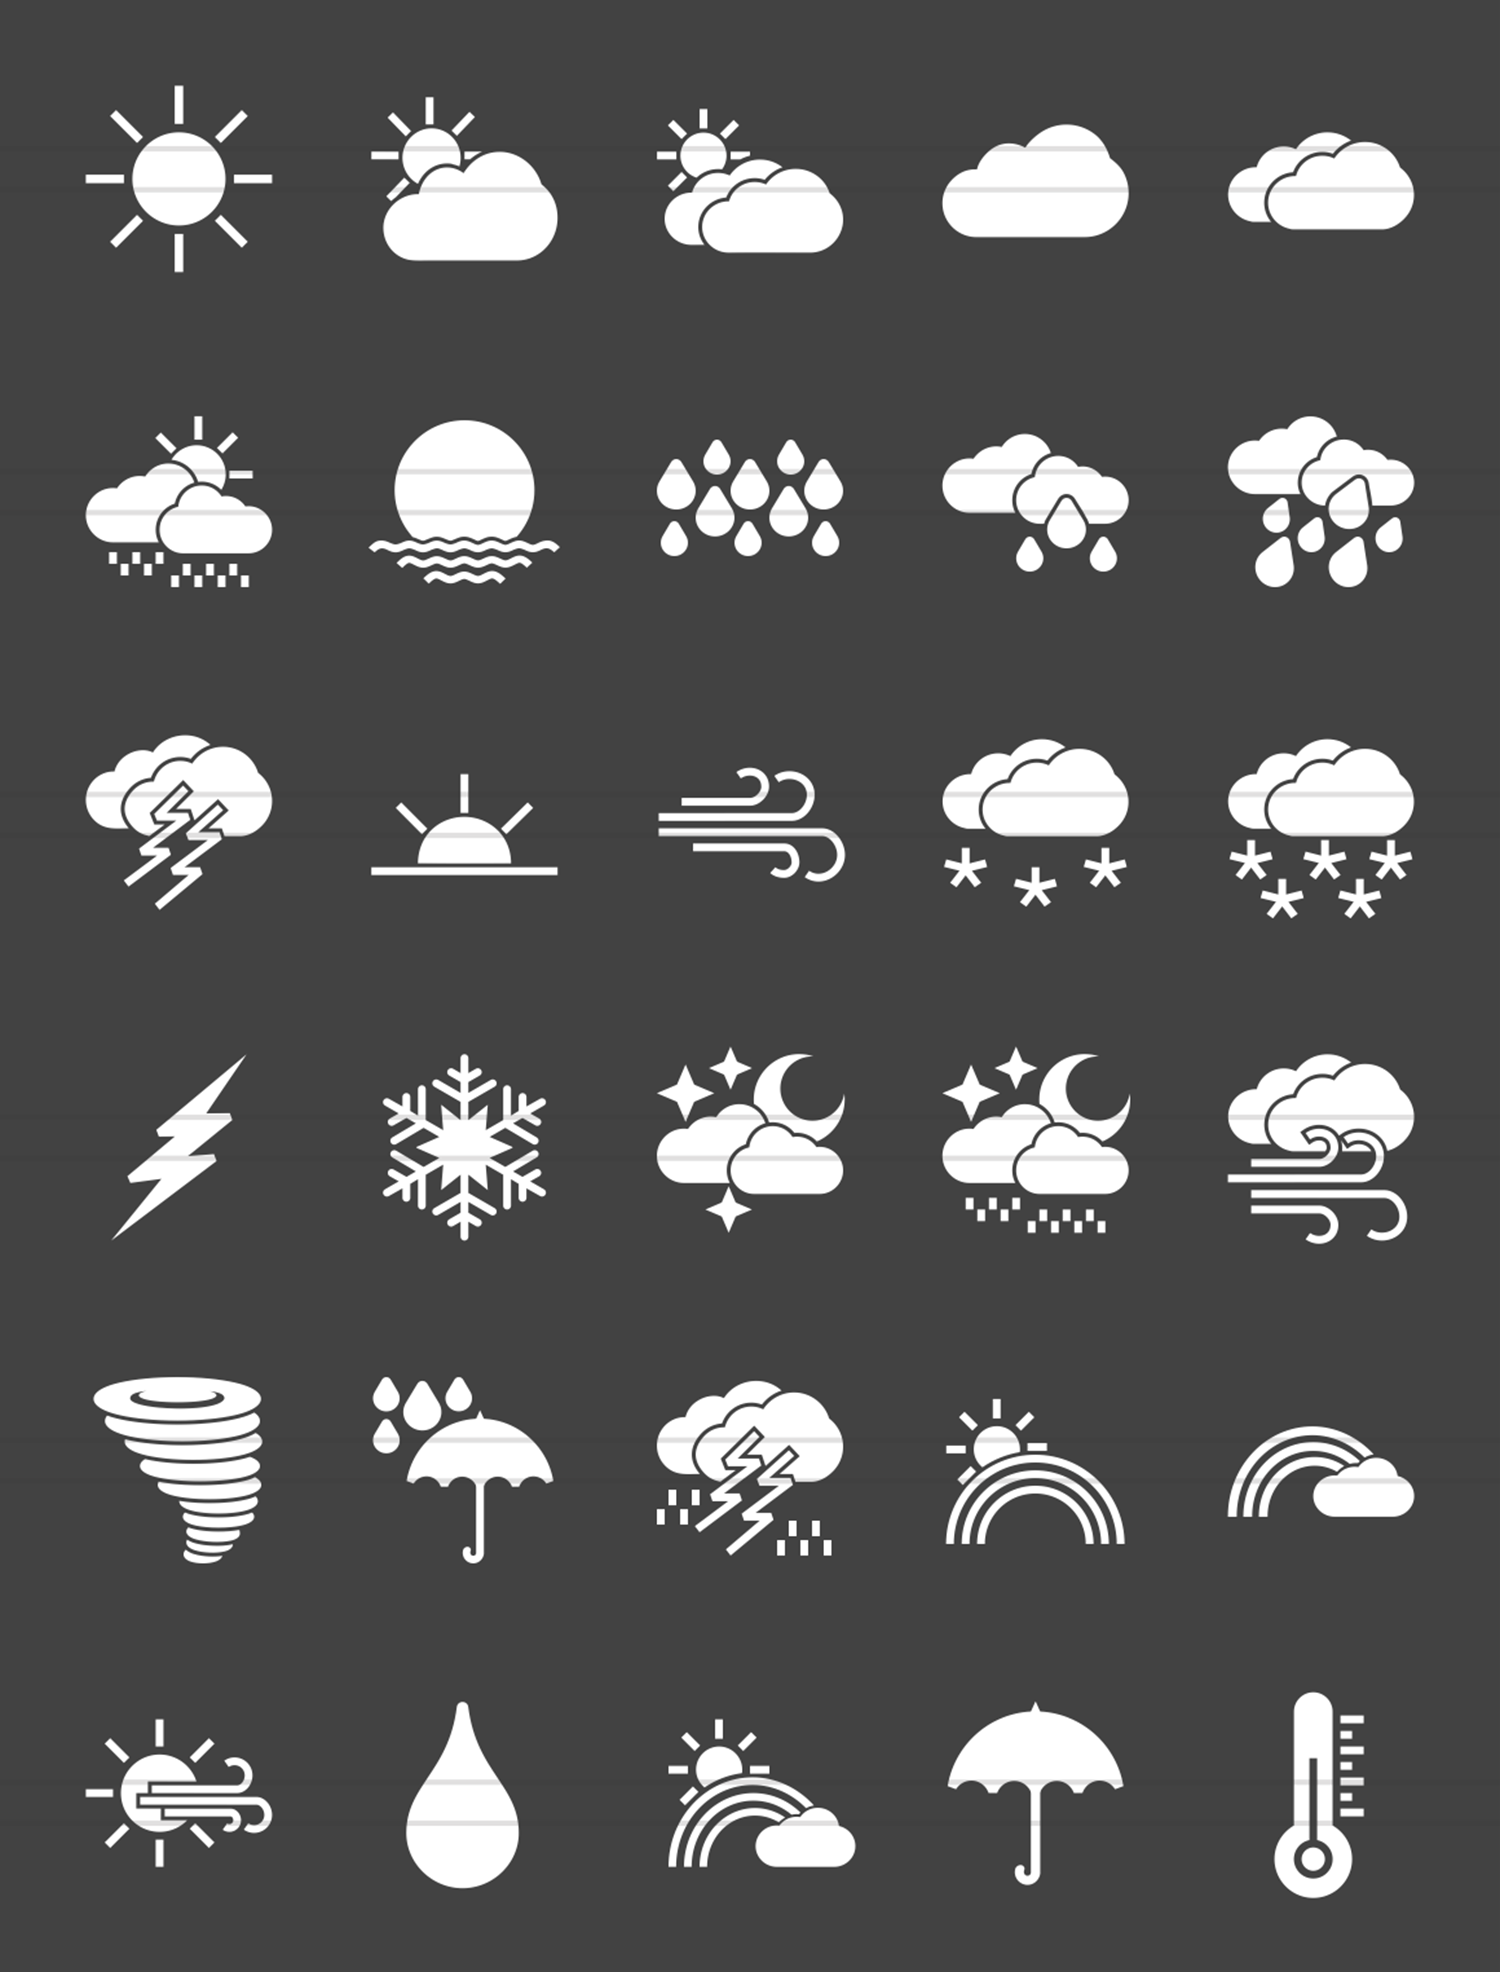 30 Weather Glyph Inverted Icons example image 2